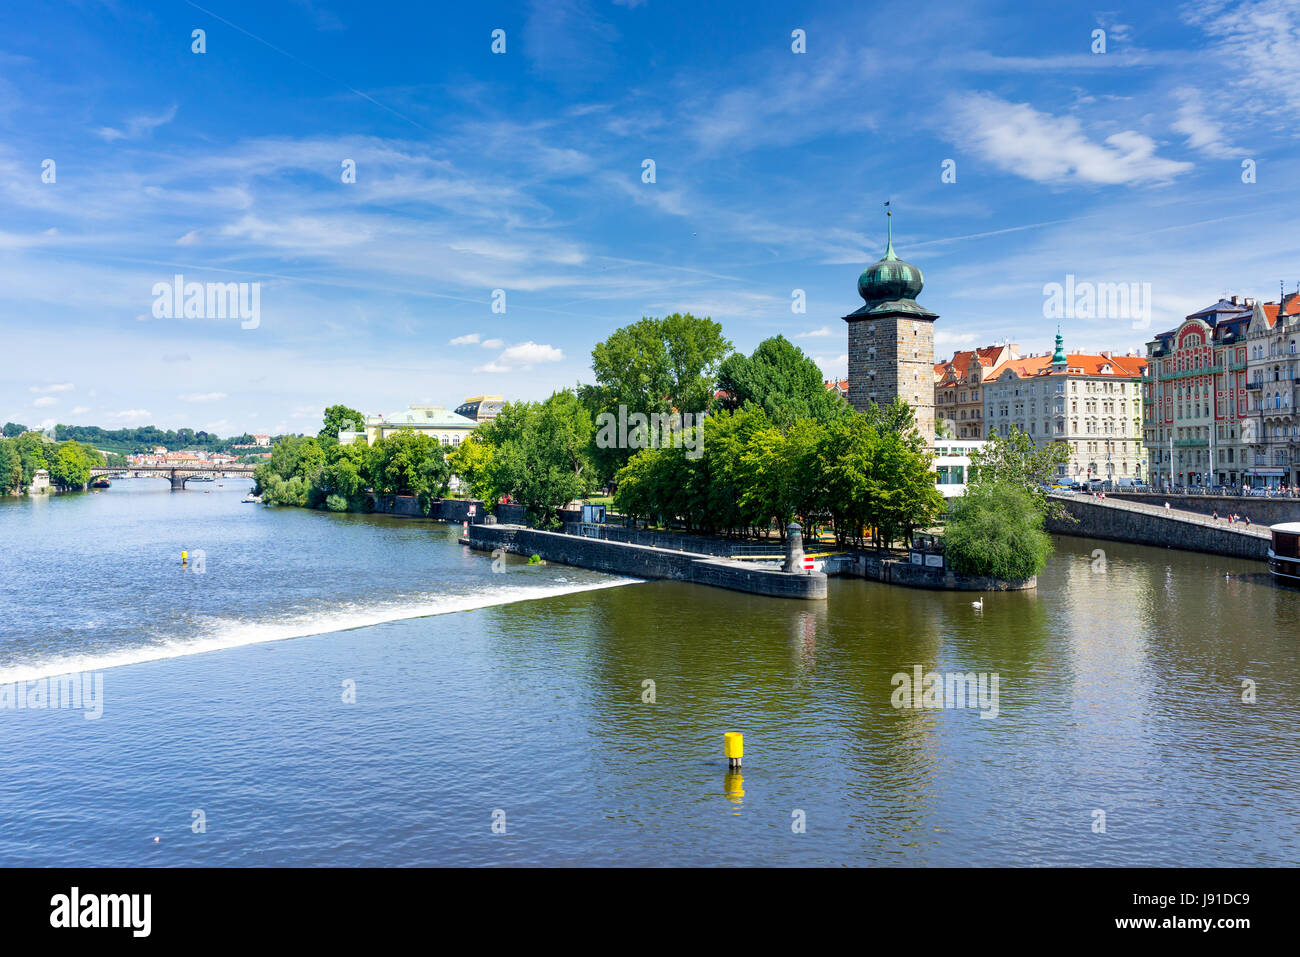 Views along the River Vltava from the Czech Capital City of Prague Europe - Stock Image